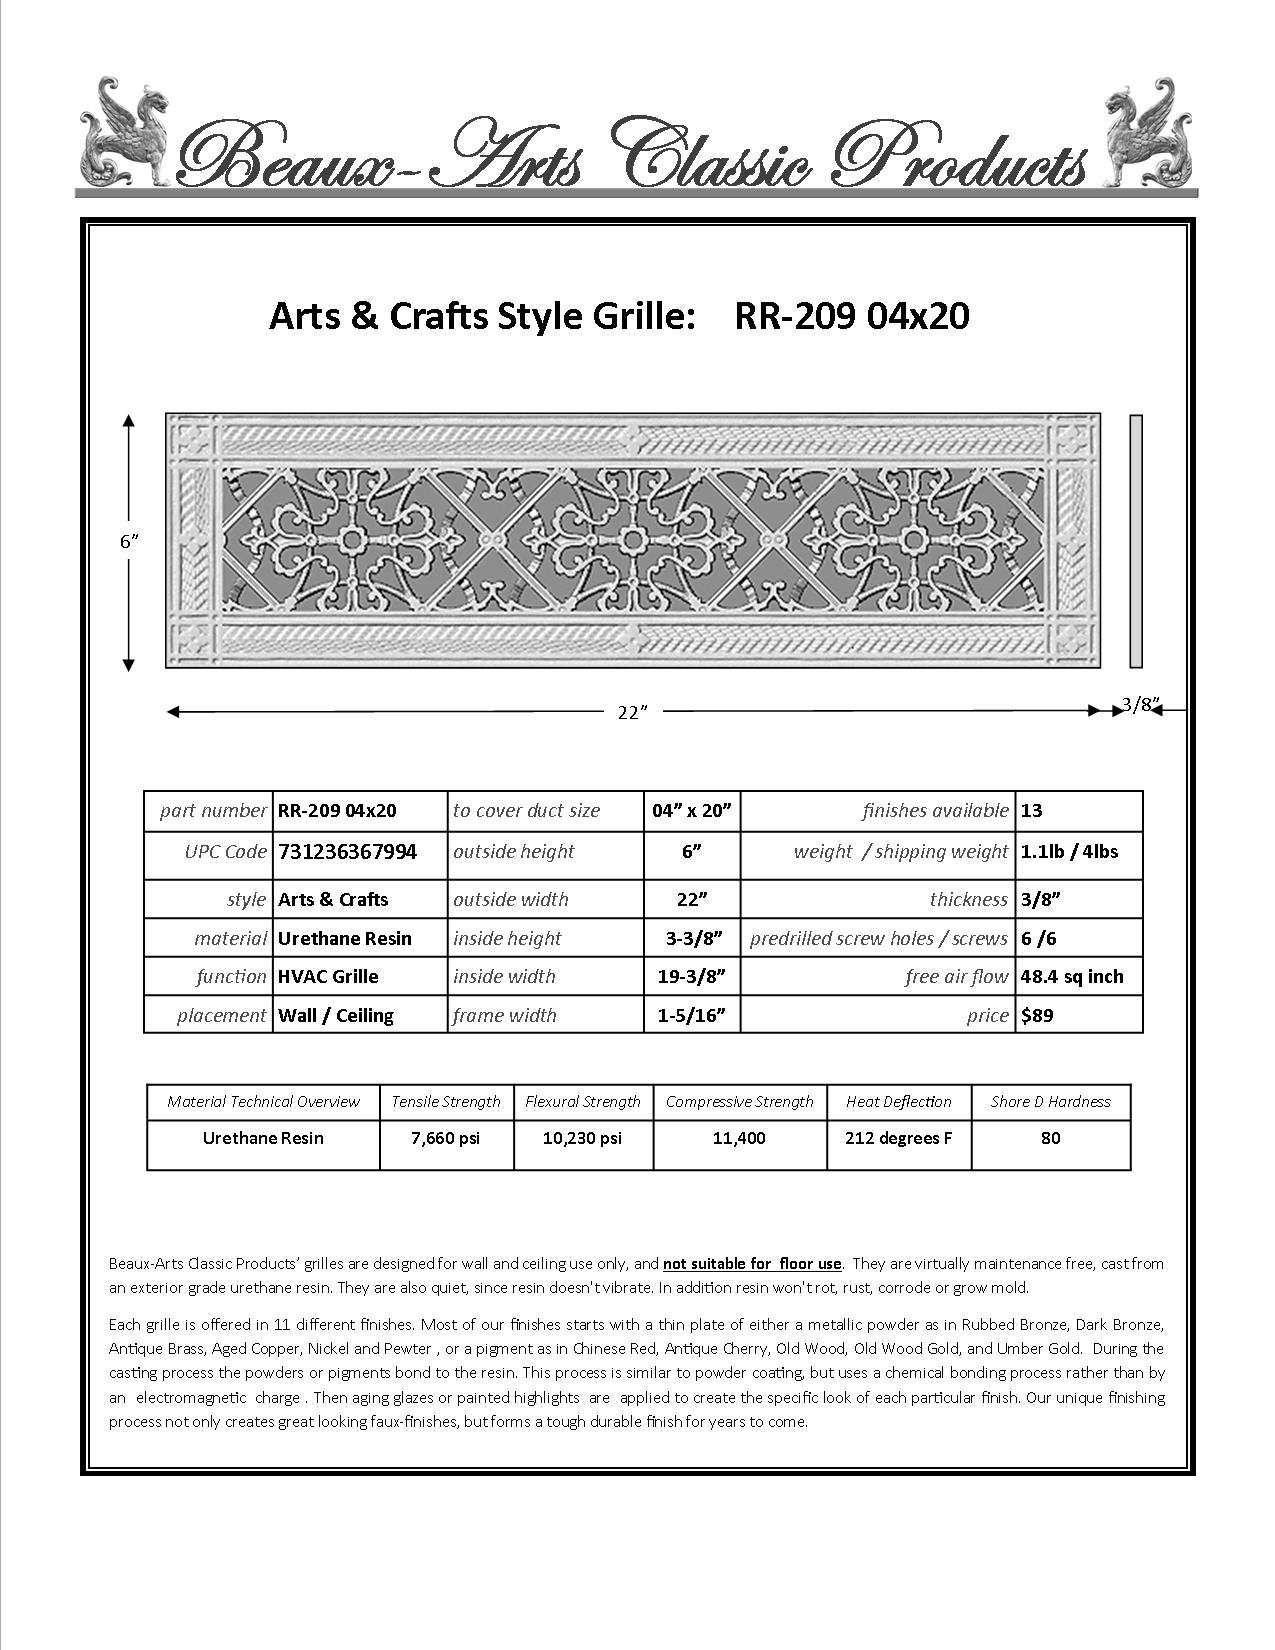 Decorative Grille, Vent Cover, or Return Register. Made of Urethane Resin to fit over a 4''x20'' duct or opening. Total size of vent is 6''x22''x3/8'', for wall and ceiling grilles (not for floor use).